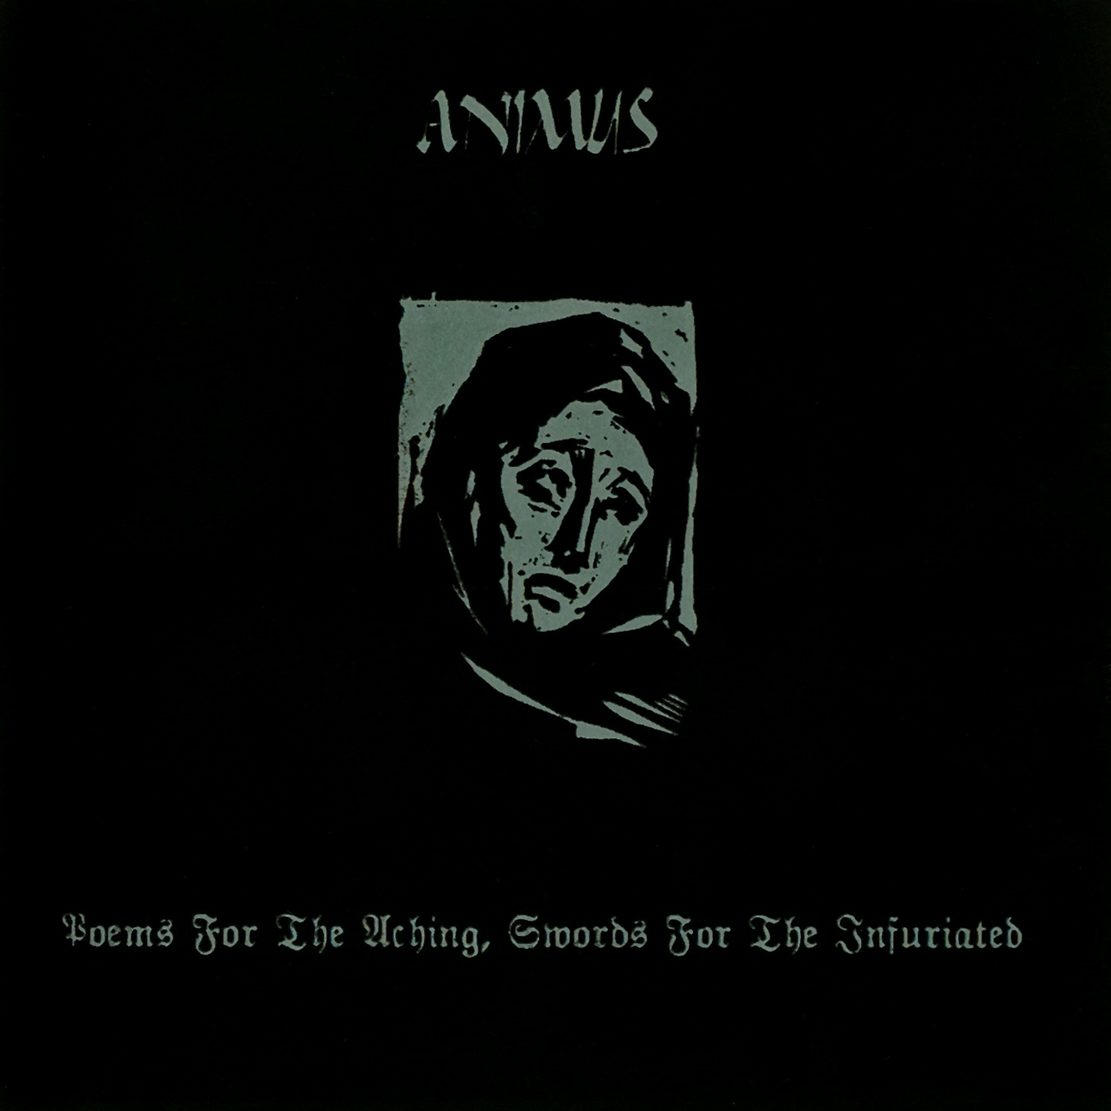 ANIMUS - Poems for the Aching, Swords for the Infuriated cover